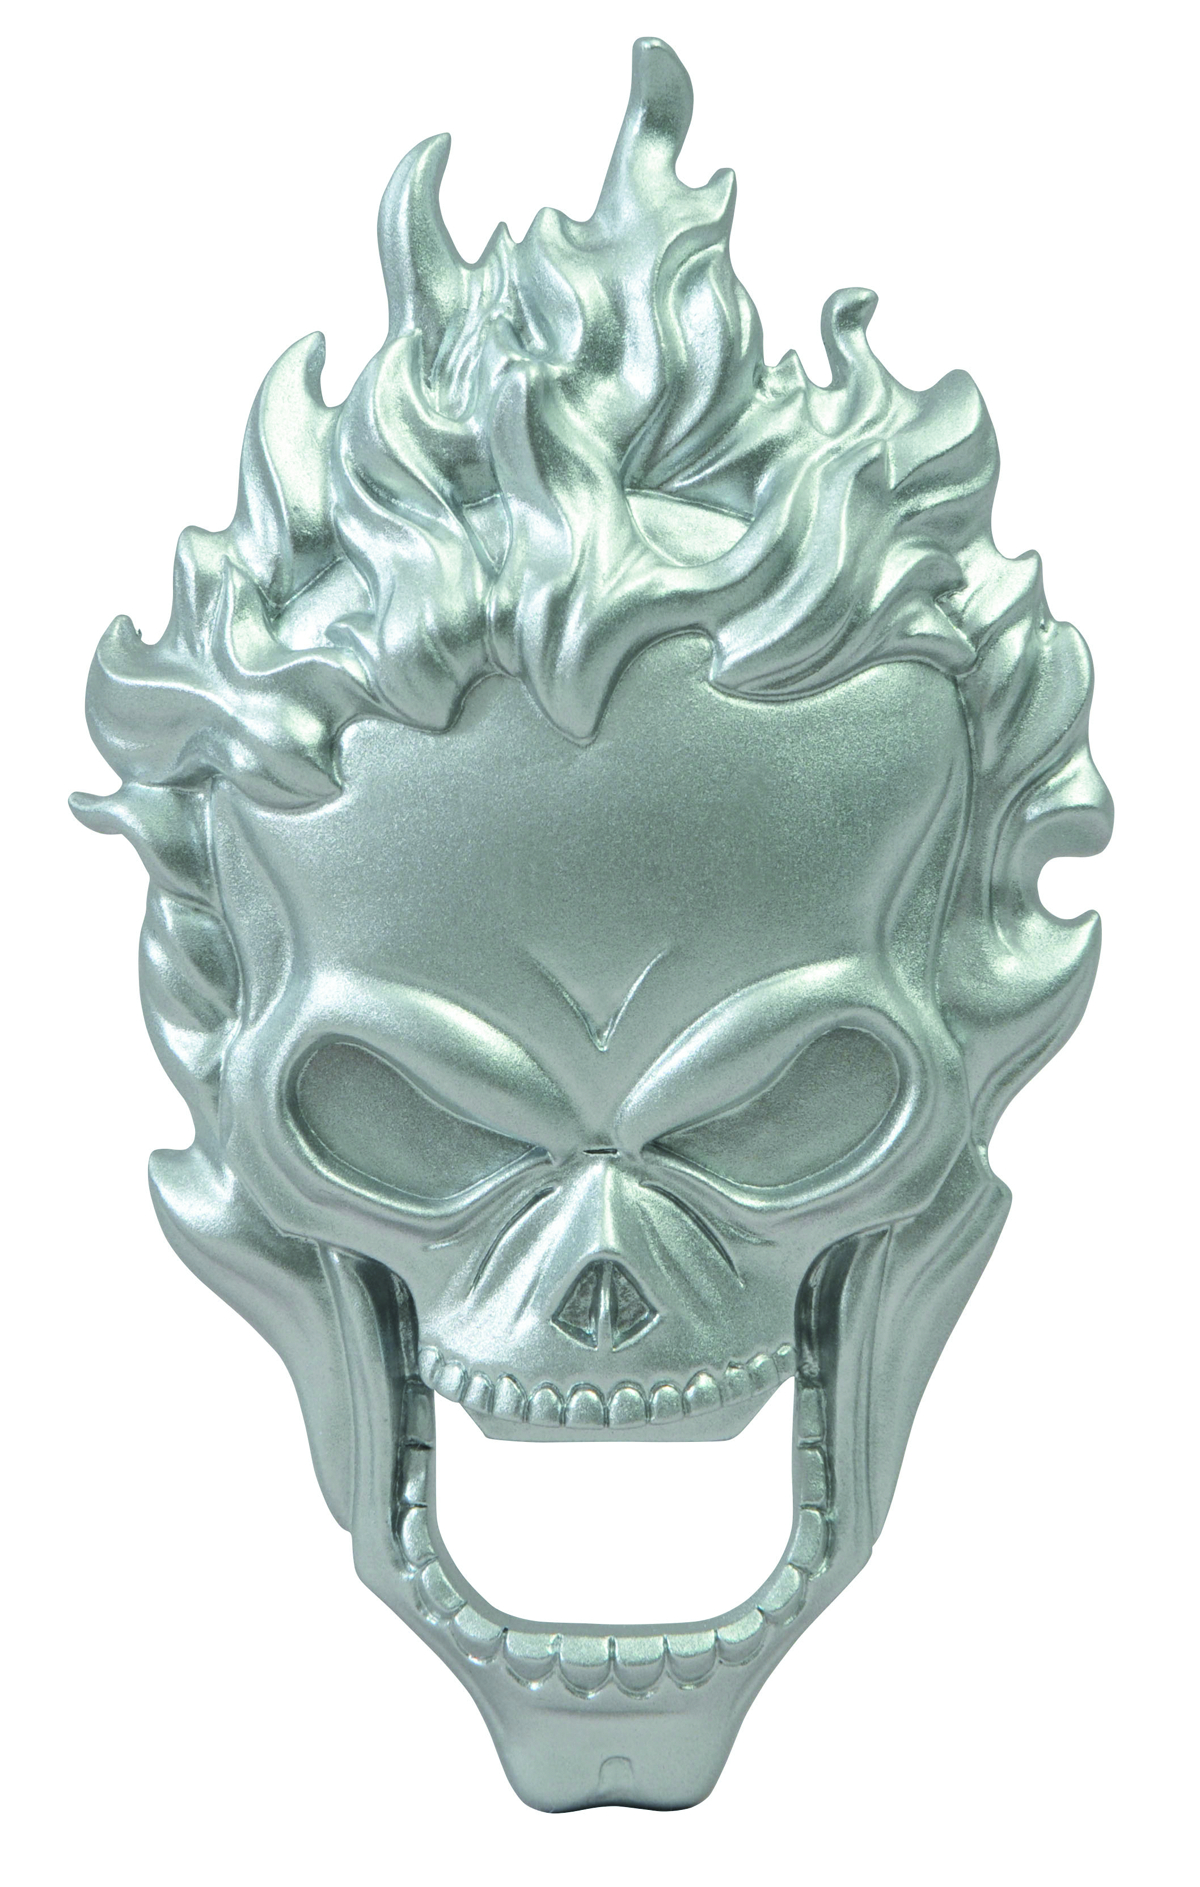 MARVEL GHOST RIDER BOTTLE OPENER